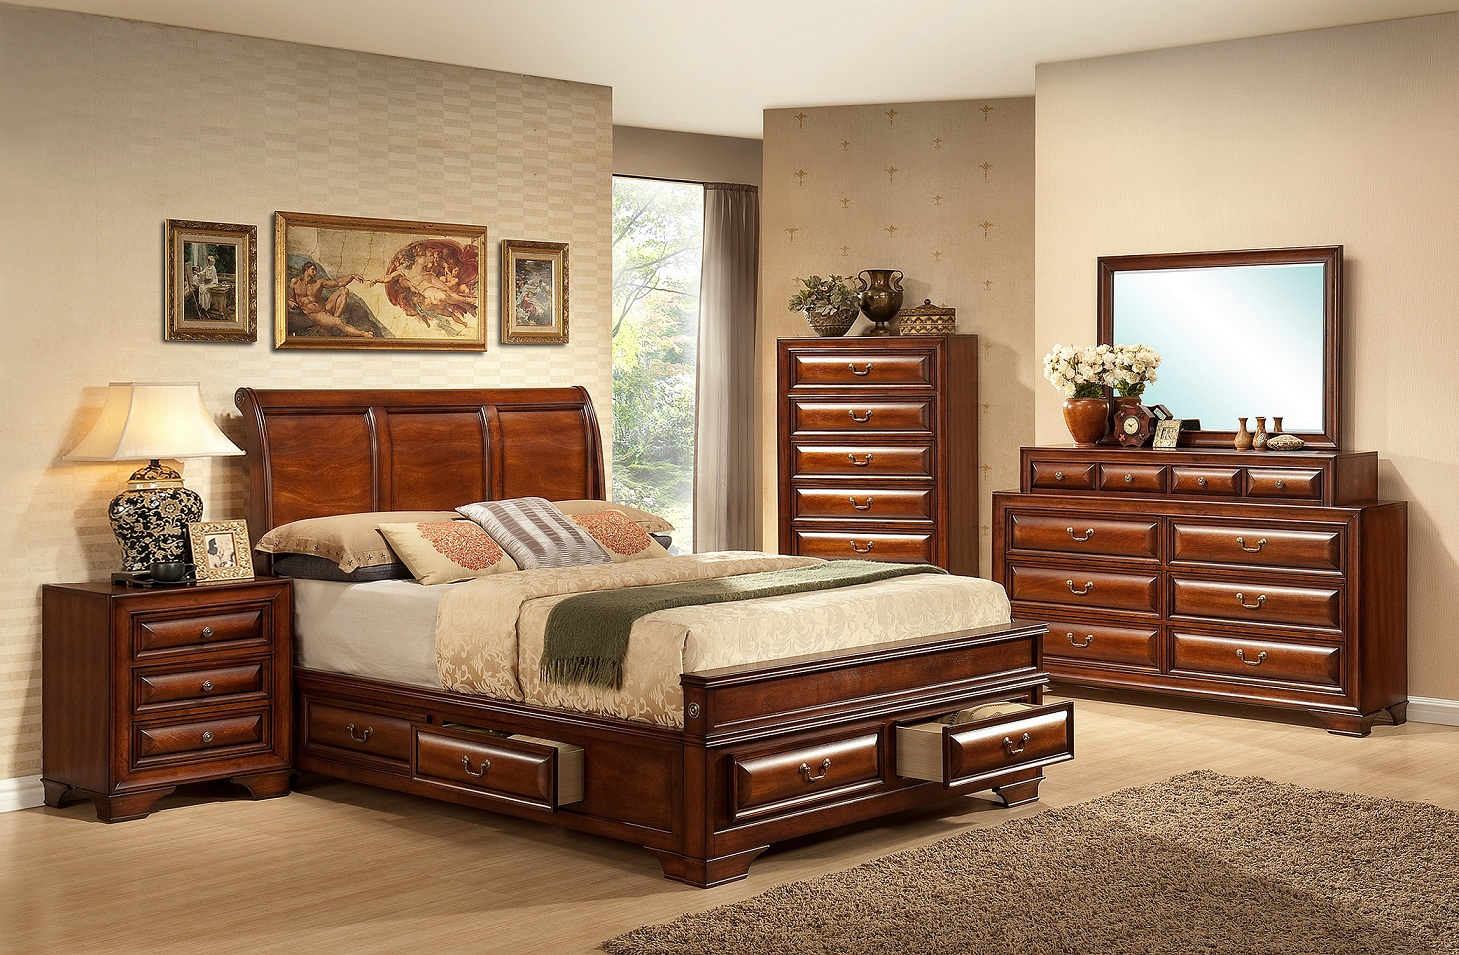 Lincoln Sleigh Factory Direct Furniture Store America The Beautiful Dreamer